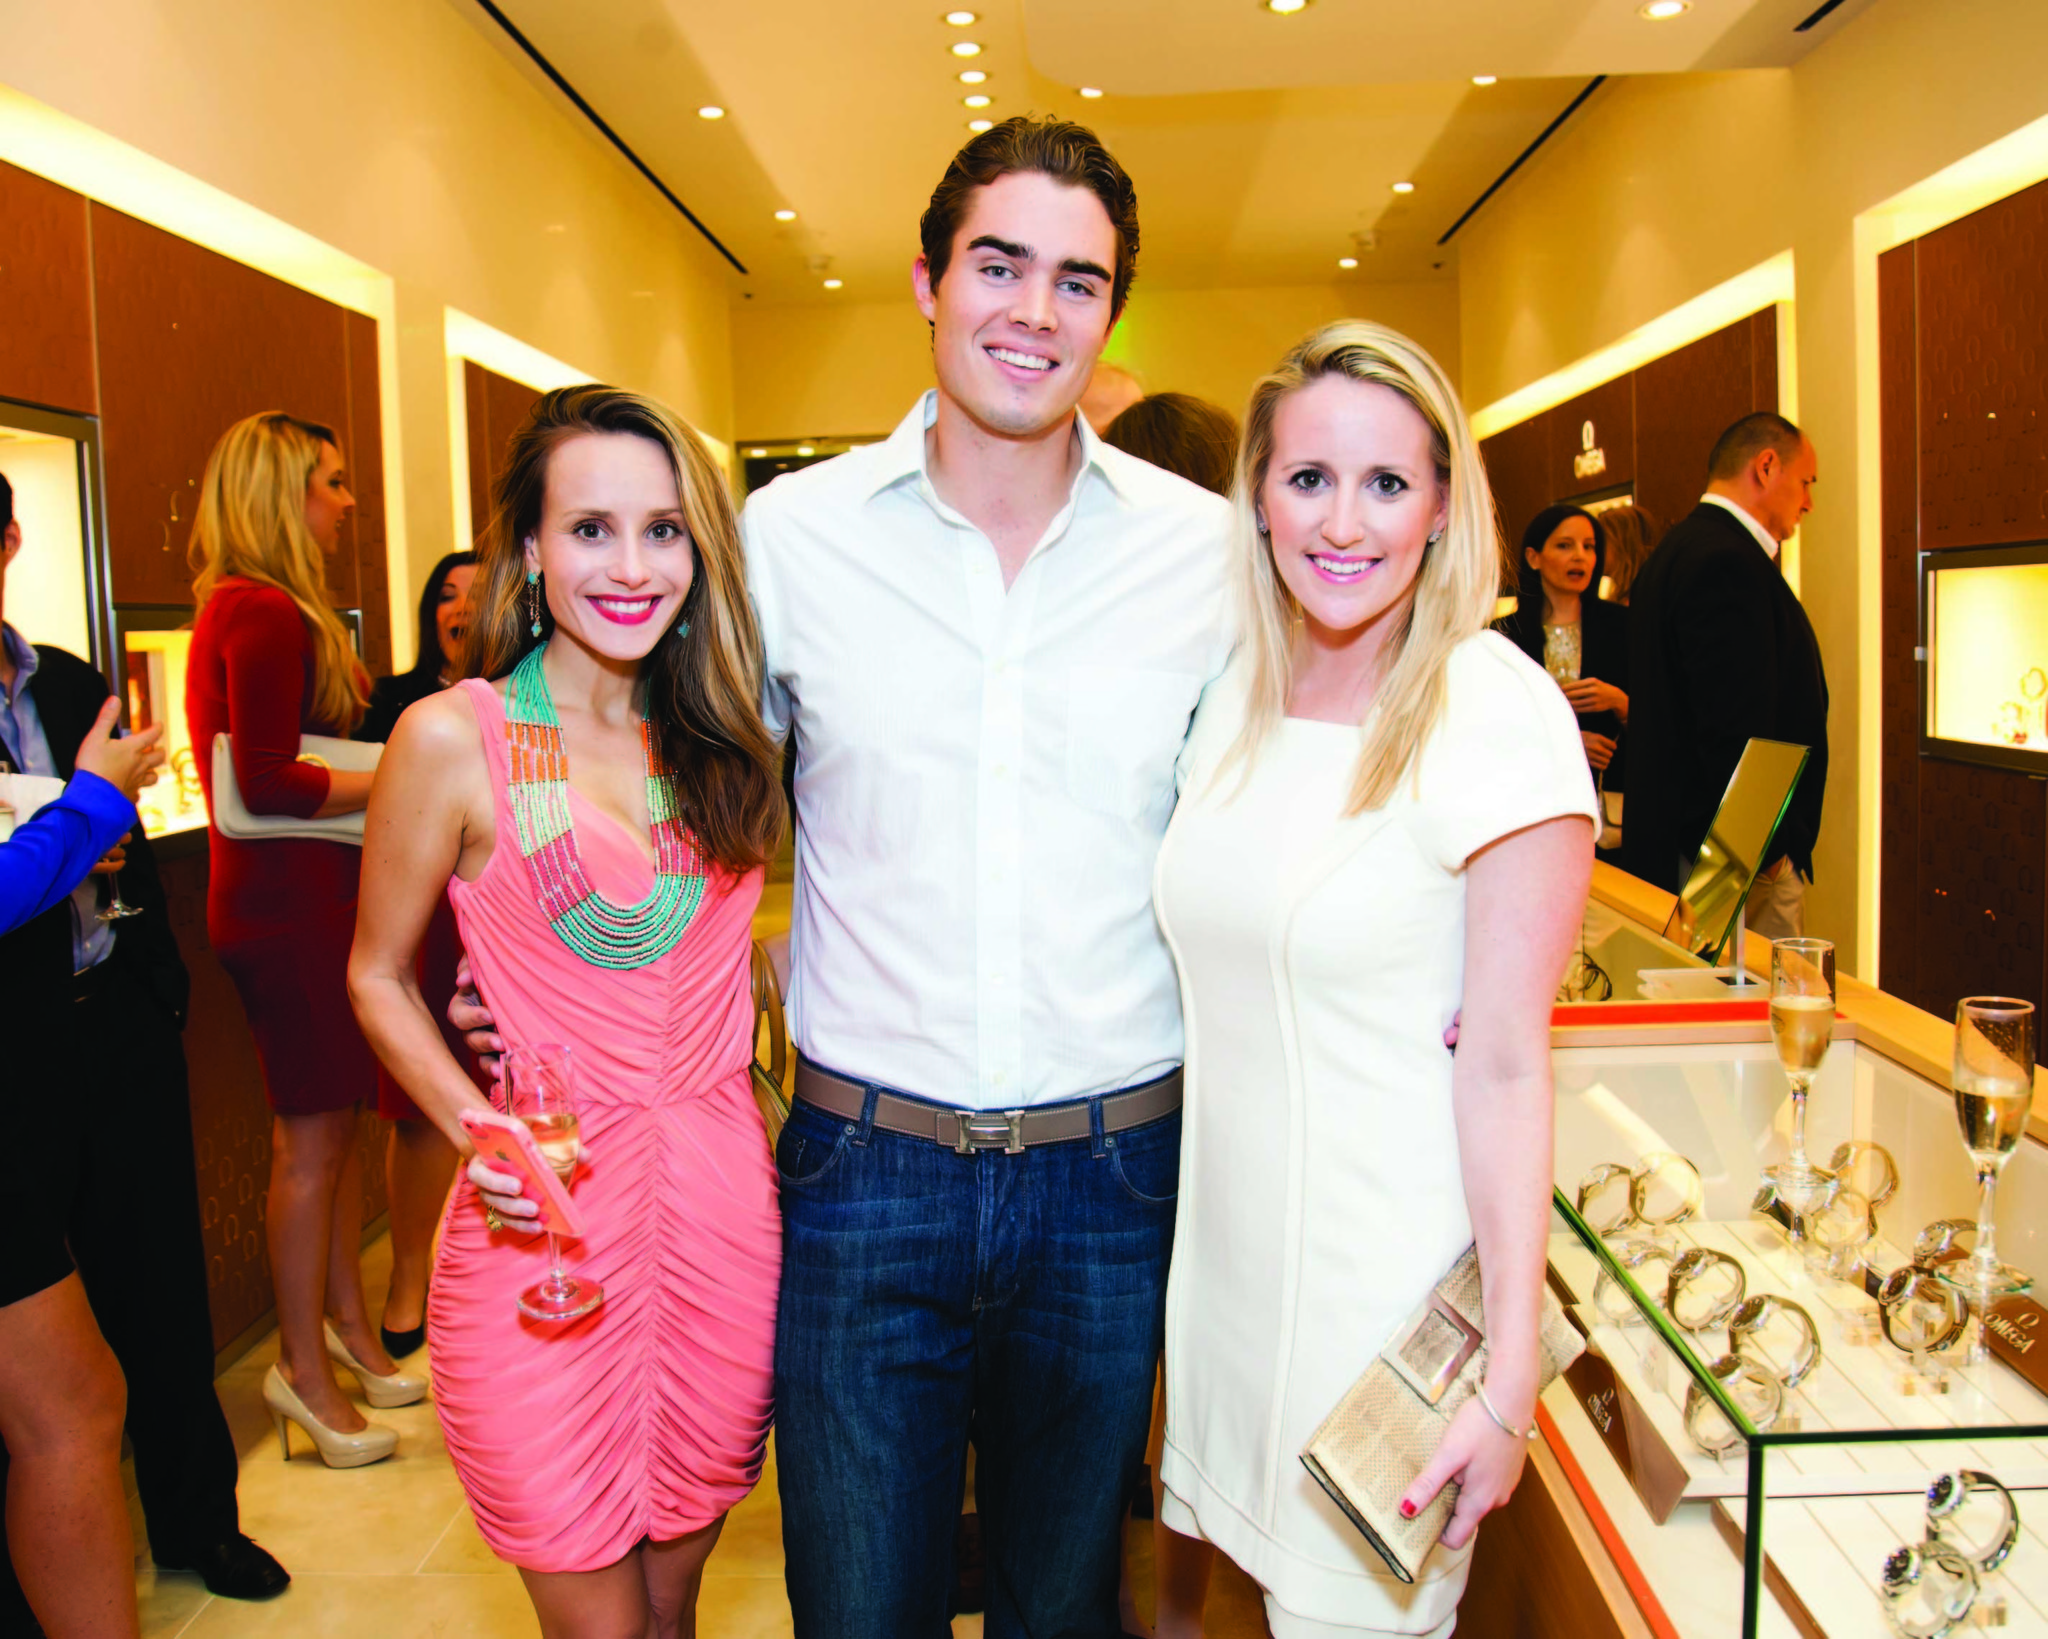 Society Scene photos - Samantha Marulli, left, Robert Murphy and Brooke Chapman Marshman were among the more than 60 members of the Young Friends of the Norton who packed OMEGA